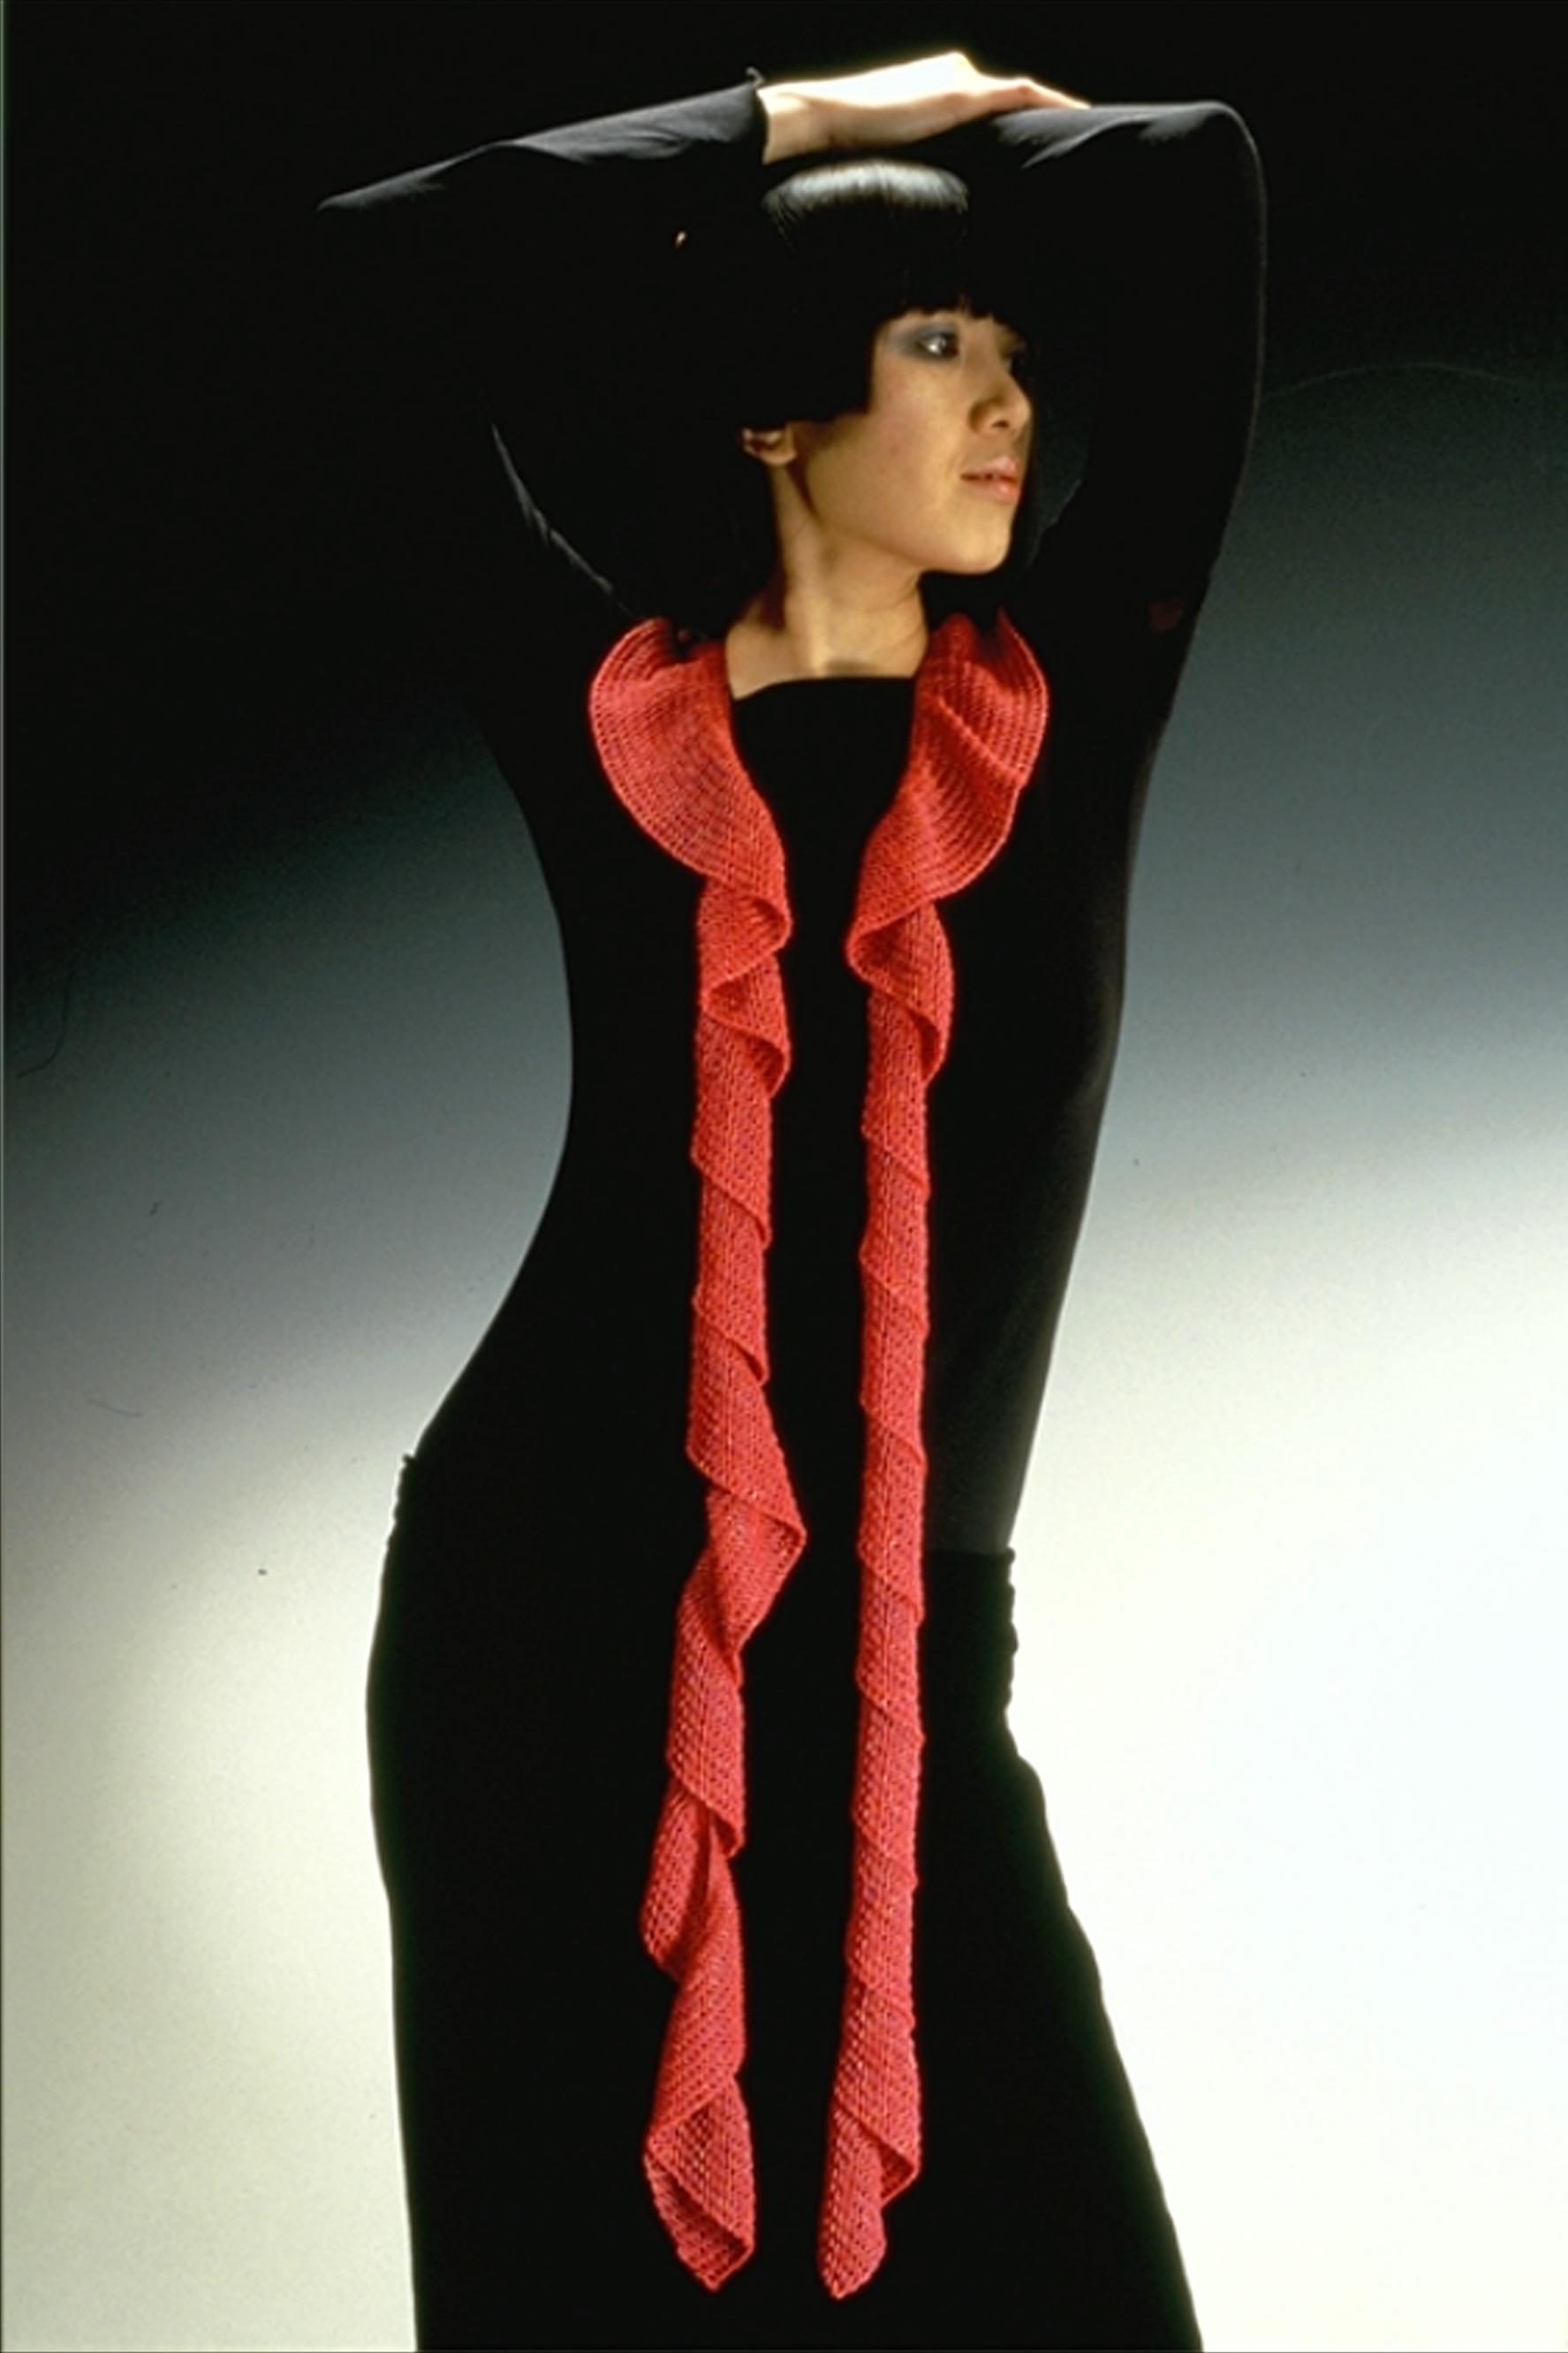 Red Ribbon Necklace on Model.JPG